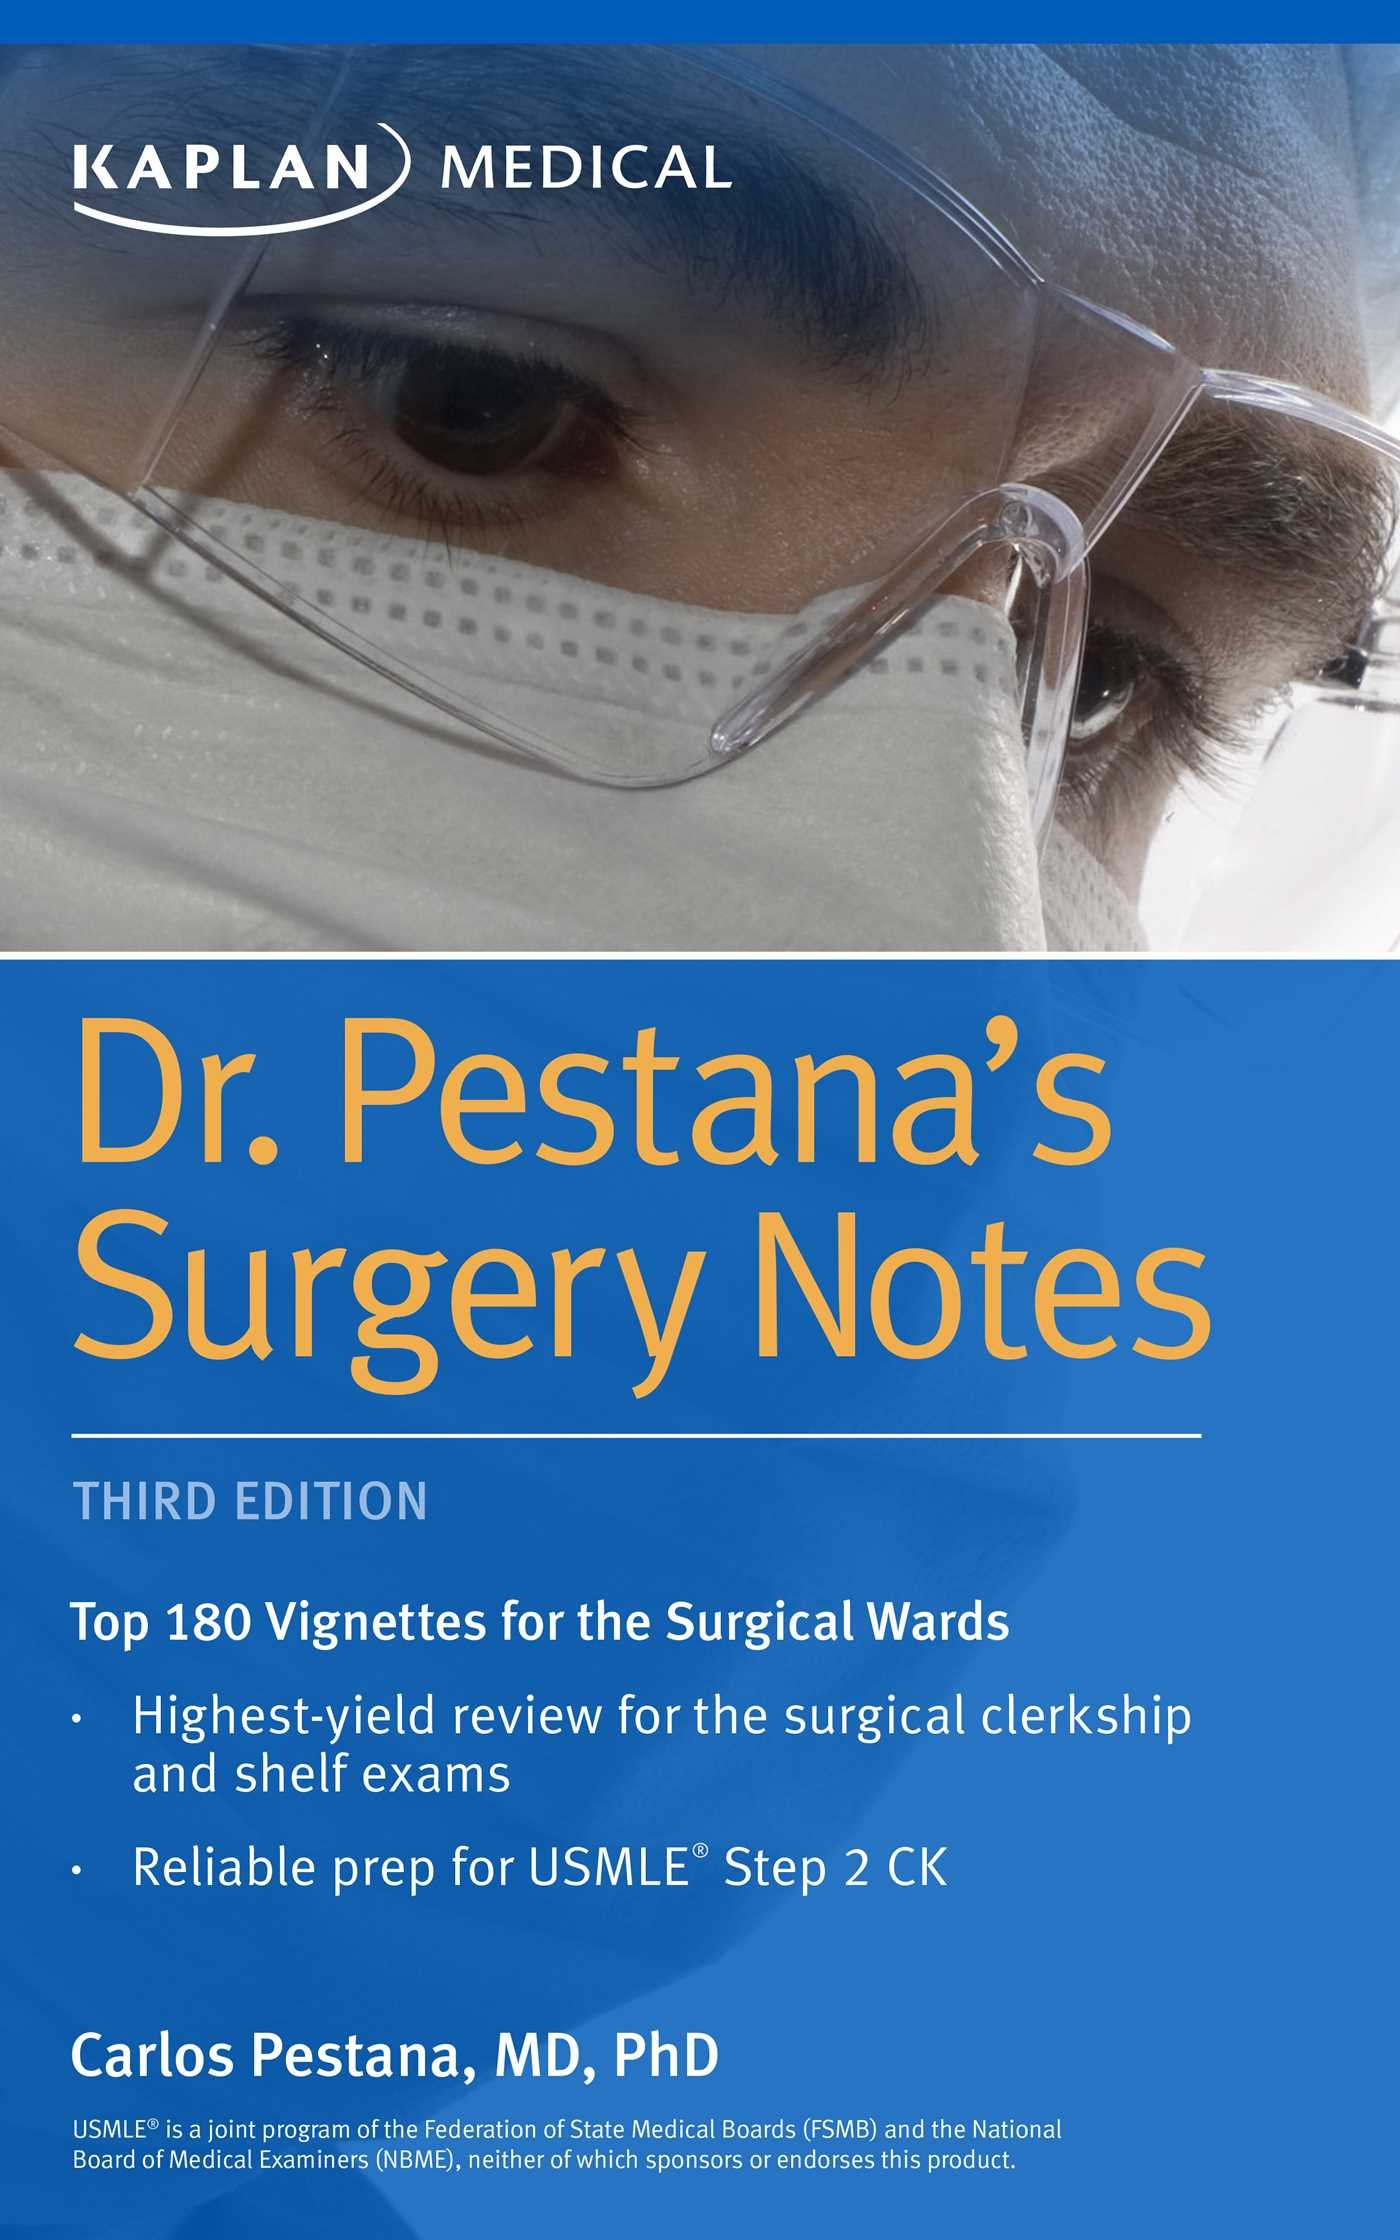 Dr  Pestana's Surgery Notes: Top 180 Vignettes for the